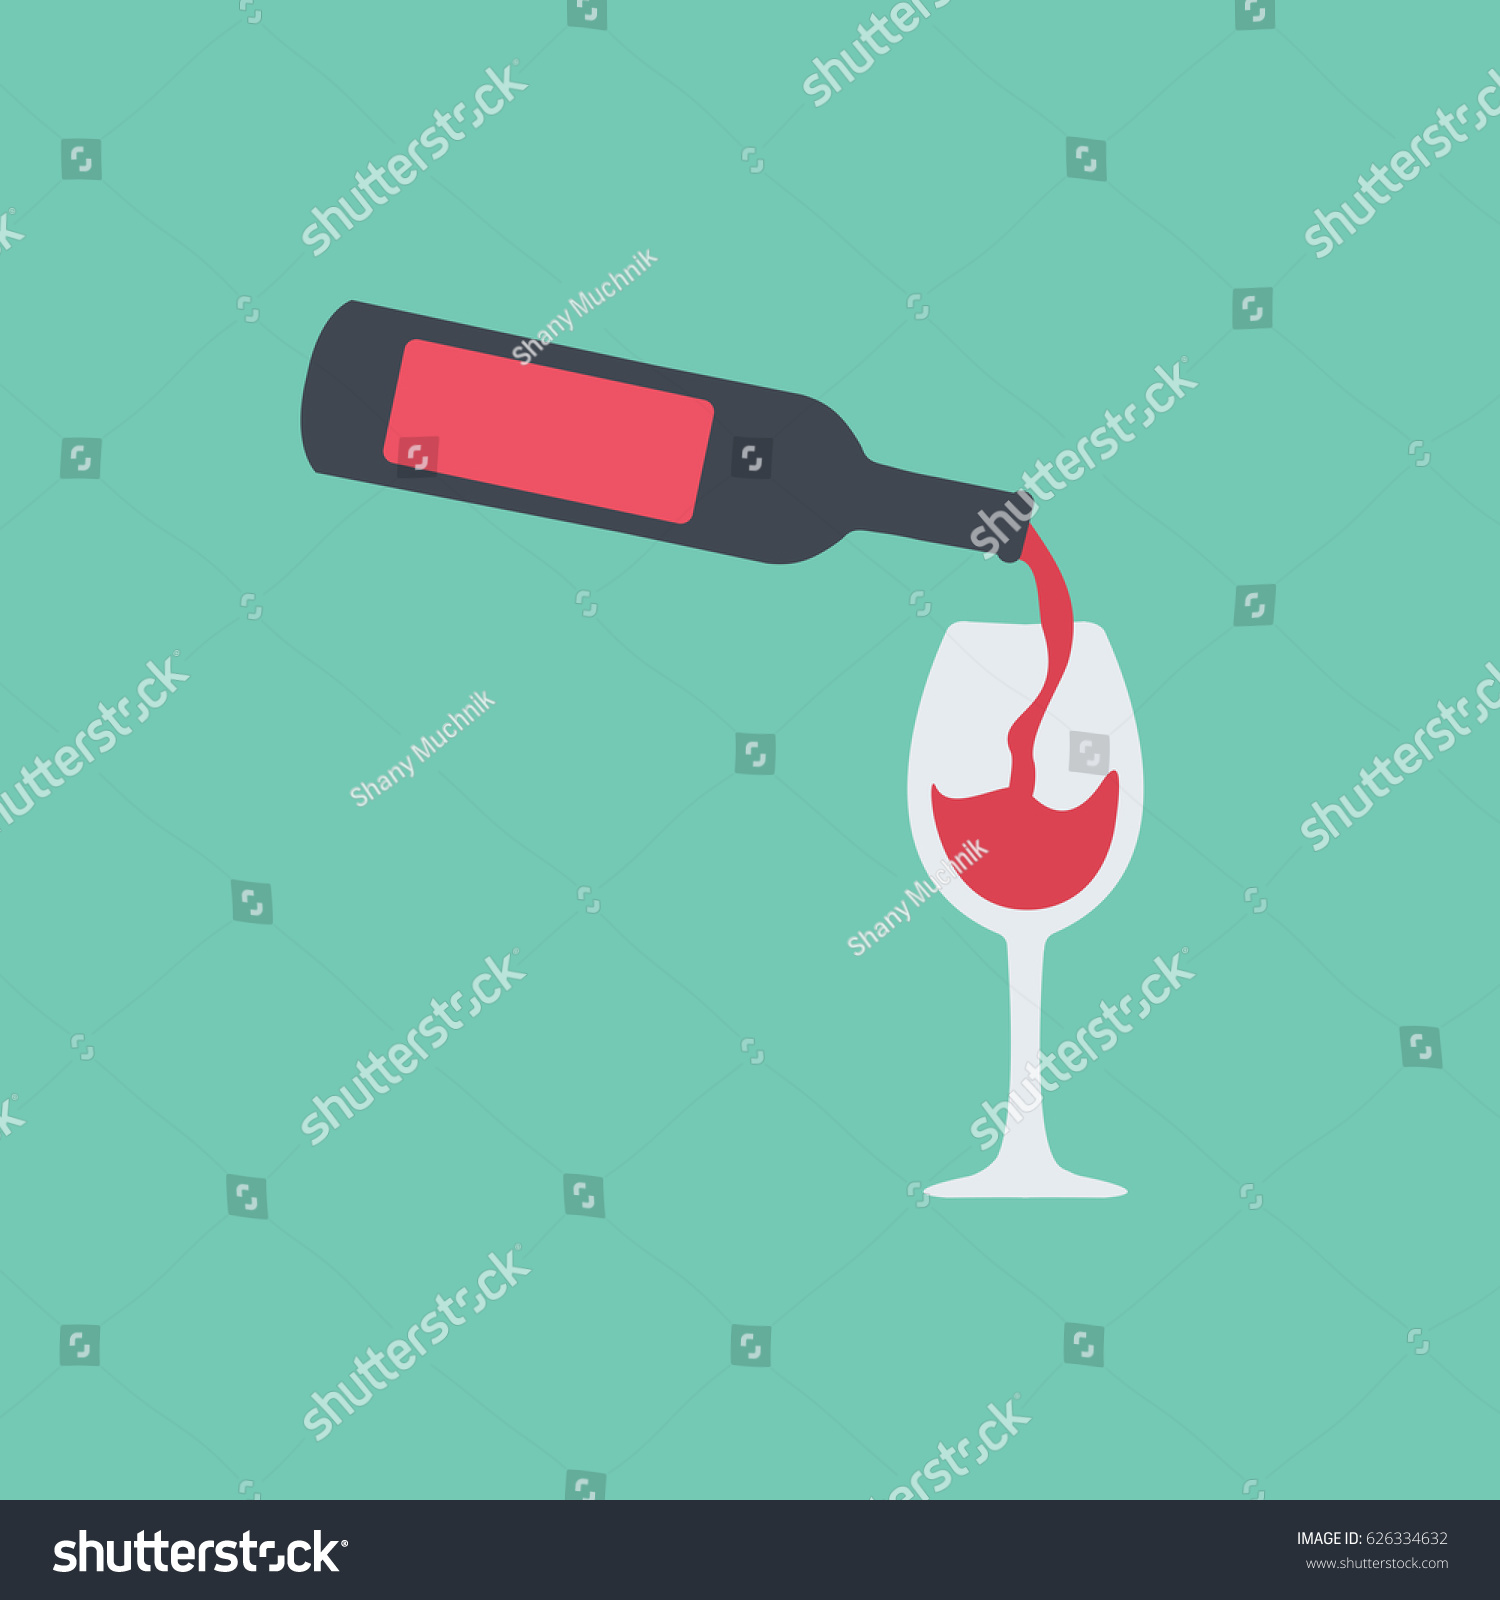 Beautiful modern flat design style bottle stock vector 626334632 beautiful modern flat design style bottle icon or symbol of wine pouring red tasty wine into biocorpaavc Gallery